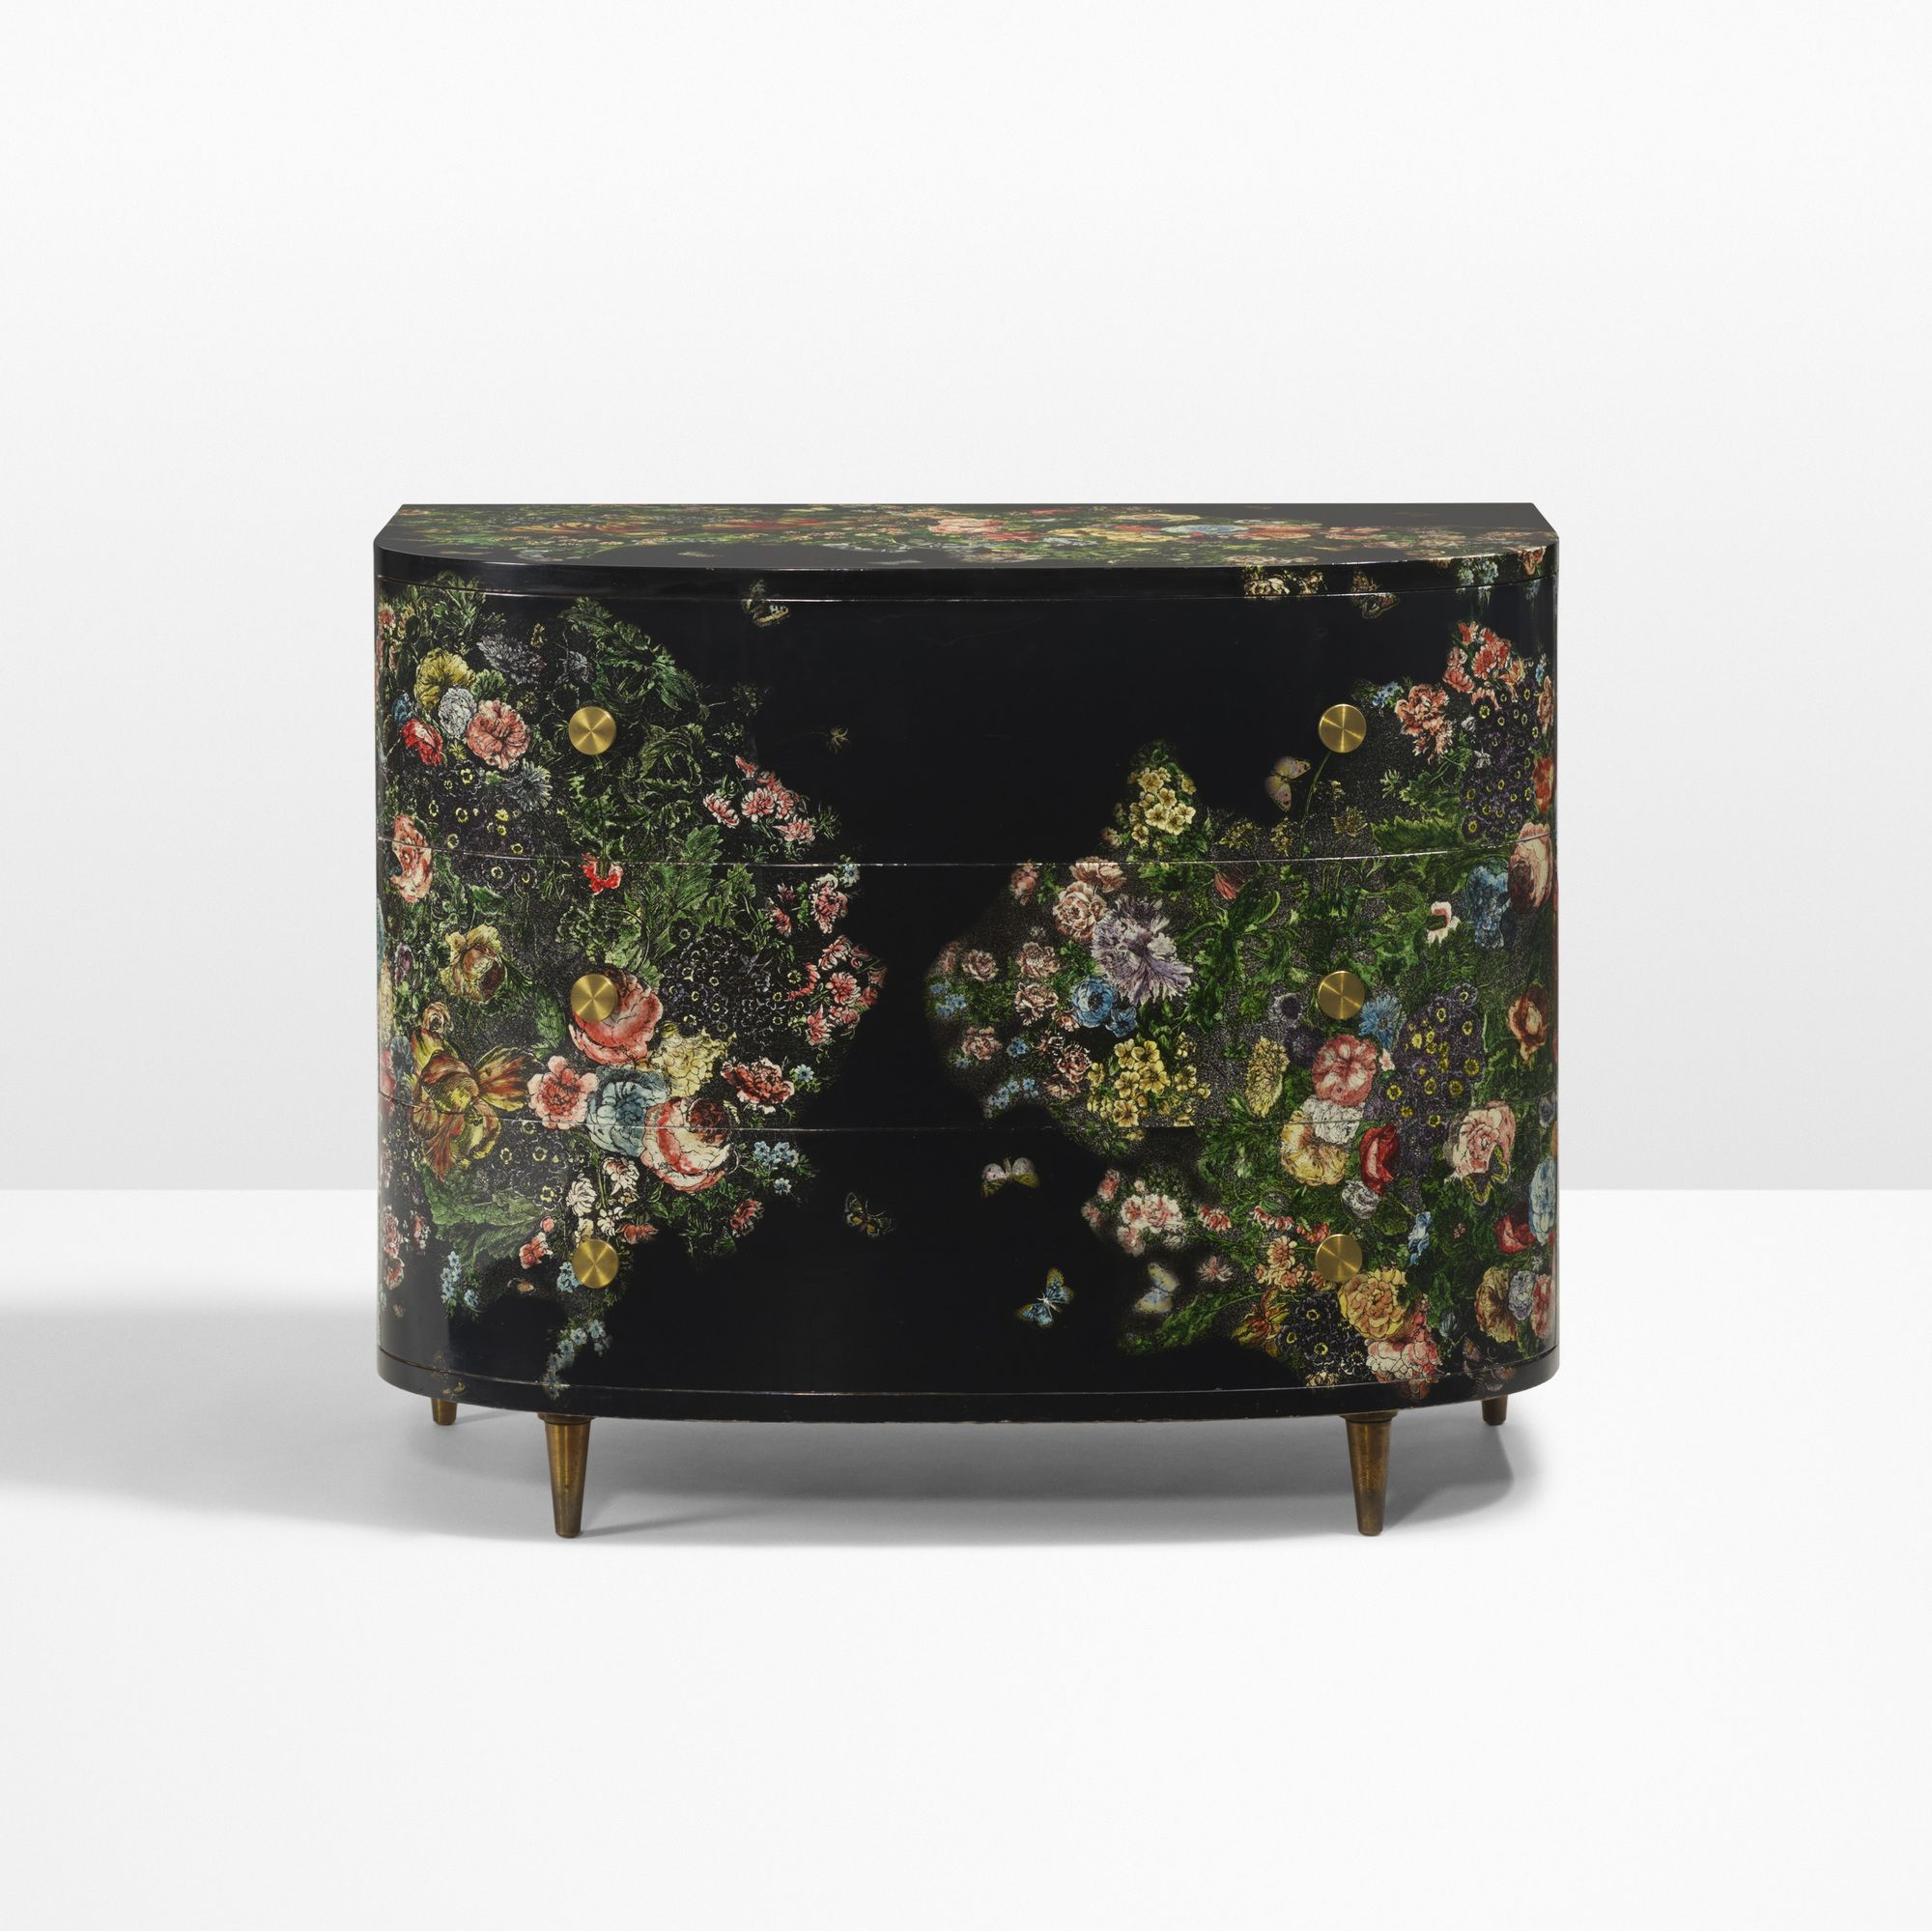 Lot 27: Piero Fornasetti. Fiori nella notte cabinet. 1955 / c. 1975, hand-painted and lithographic transfer-printed wood, brass. 39¾ w x 22 d x 32½ h in. estimate: $30,000–40,000. Cabinet features three drawers. Signed with applied metal manufacturer's label to drawer: [Fornasetti Milano]. This work has been reviewed by Barnaba Fornasetti. Provenance: Private Collection, Como, Italy   Acquired circa 1985 by the present owner